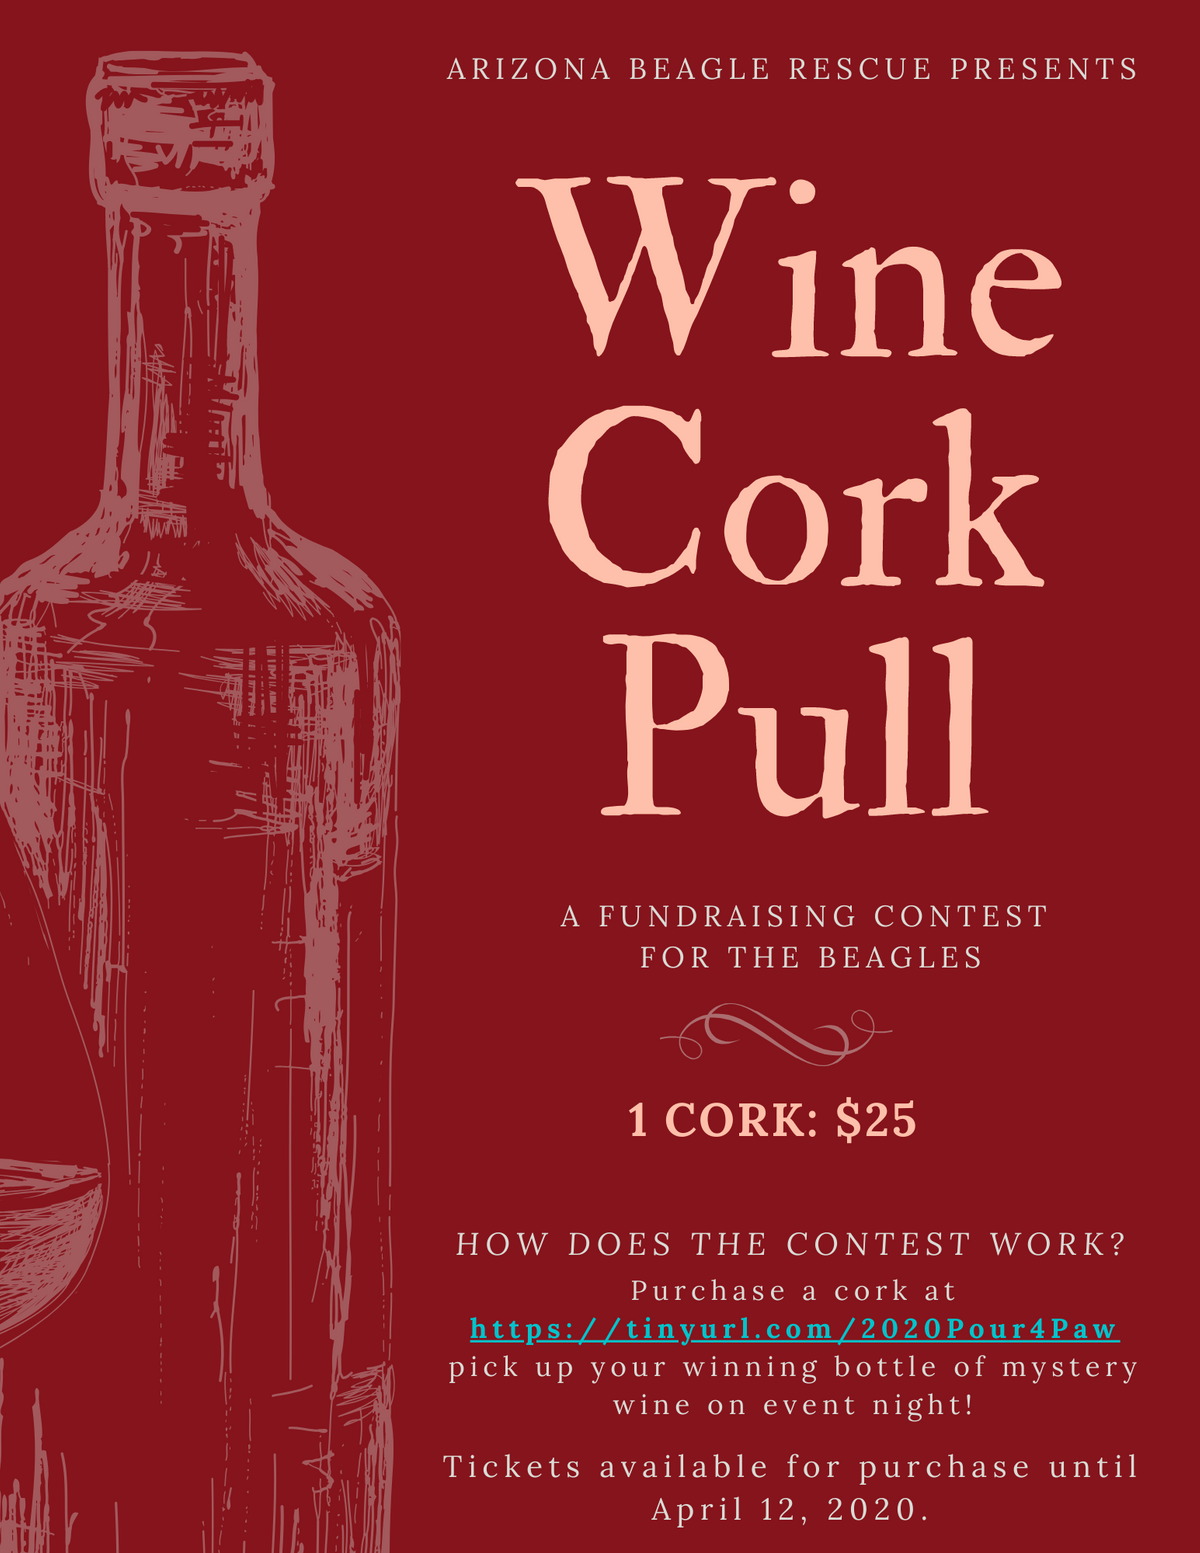 P4aP Wine Cork Pull Flyer.png